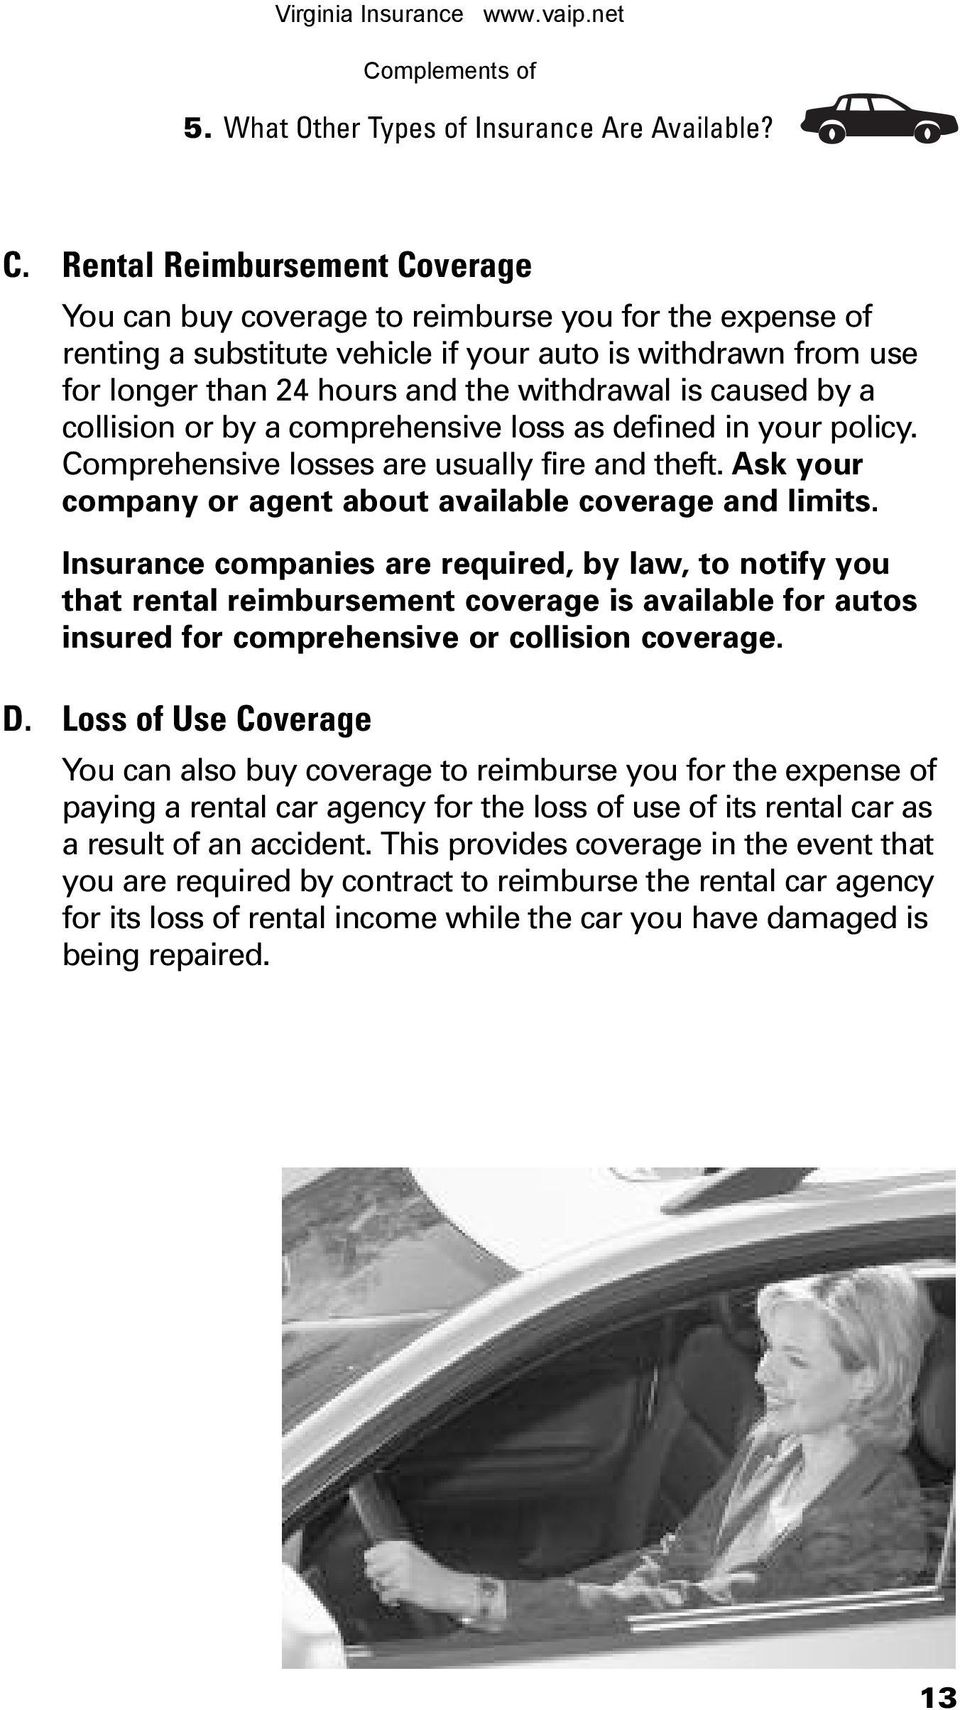 caused by a collision or by a comprehensive loss as defined in your policy. Comprehensive losses are usually fire and theft. Ask your company or agent about available coverage and limits.